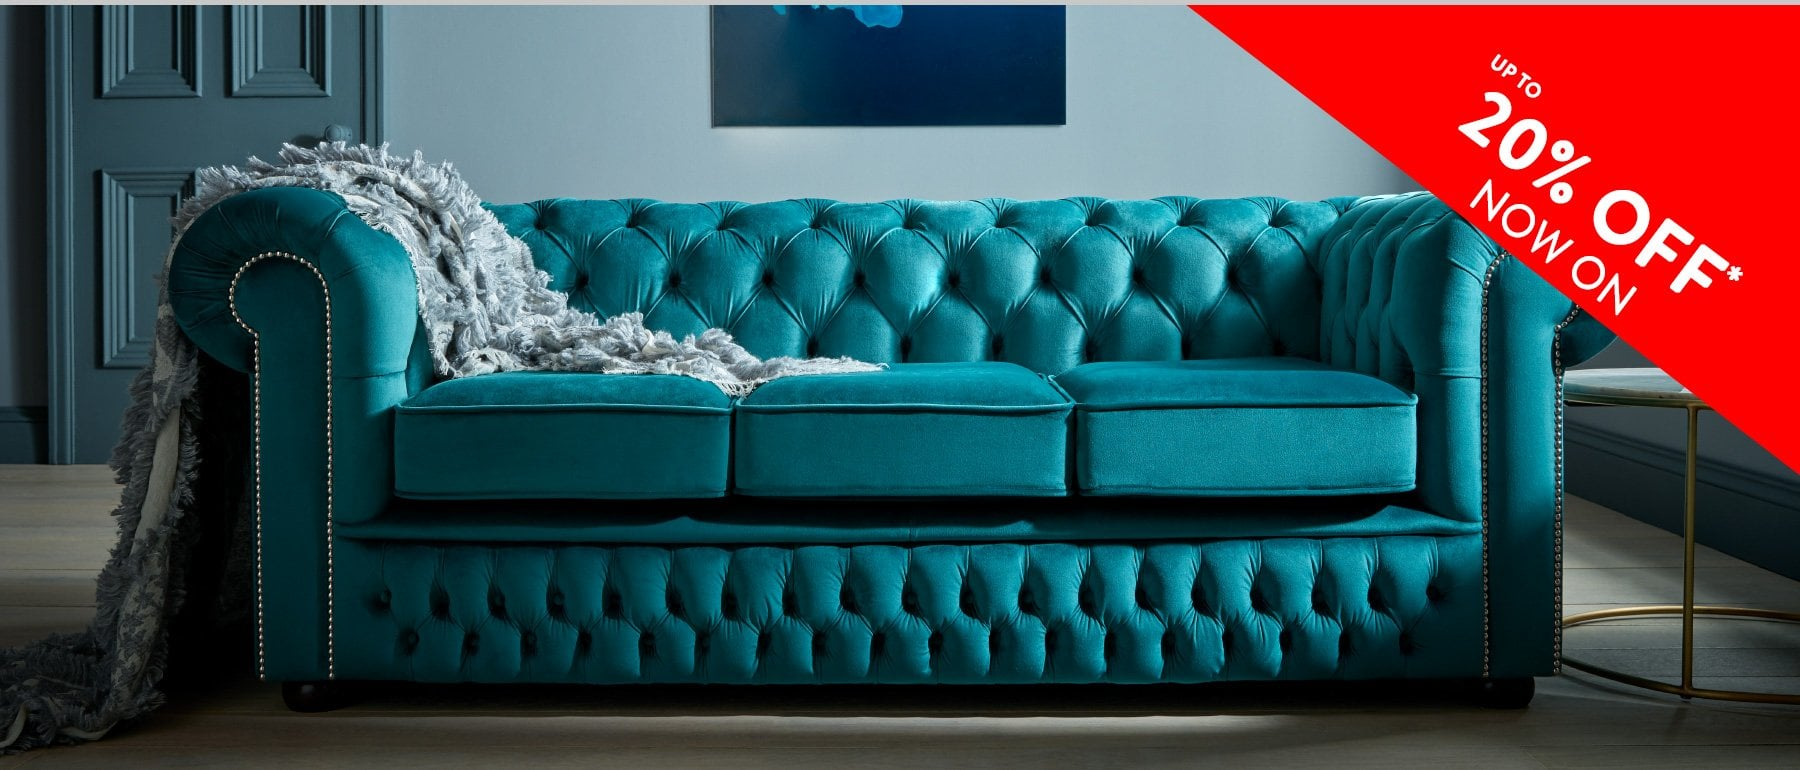 63c7f08bff5d7 Chesterfield Furniture  Tufted Furniture Made in Britain